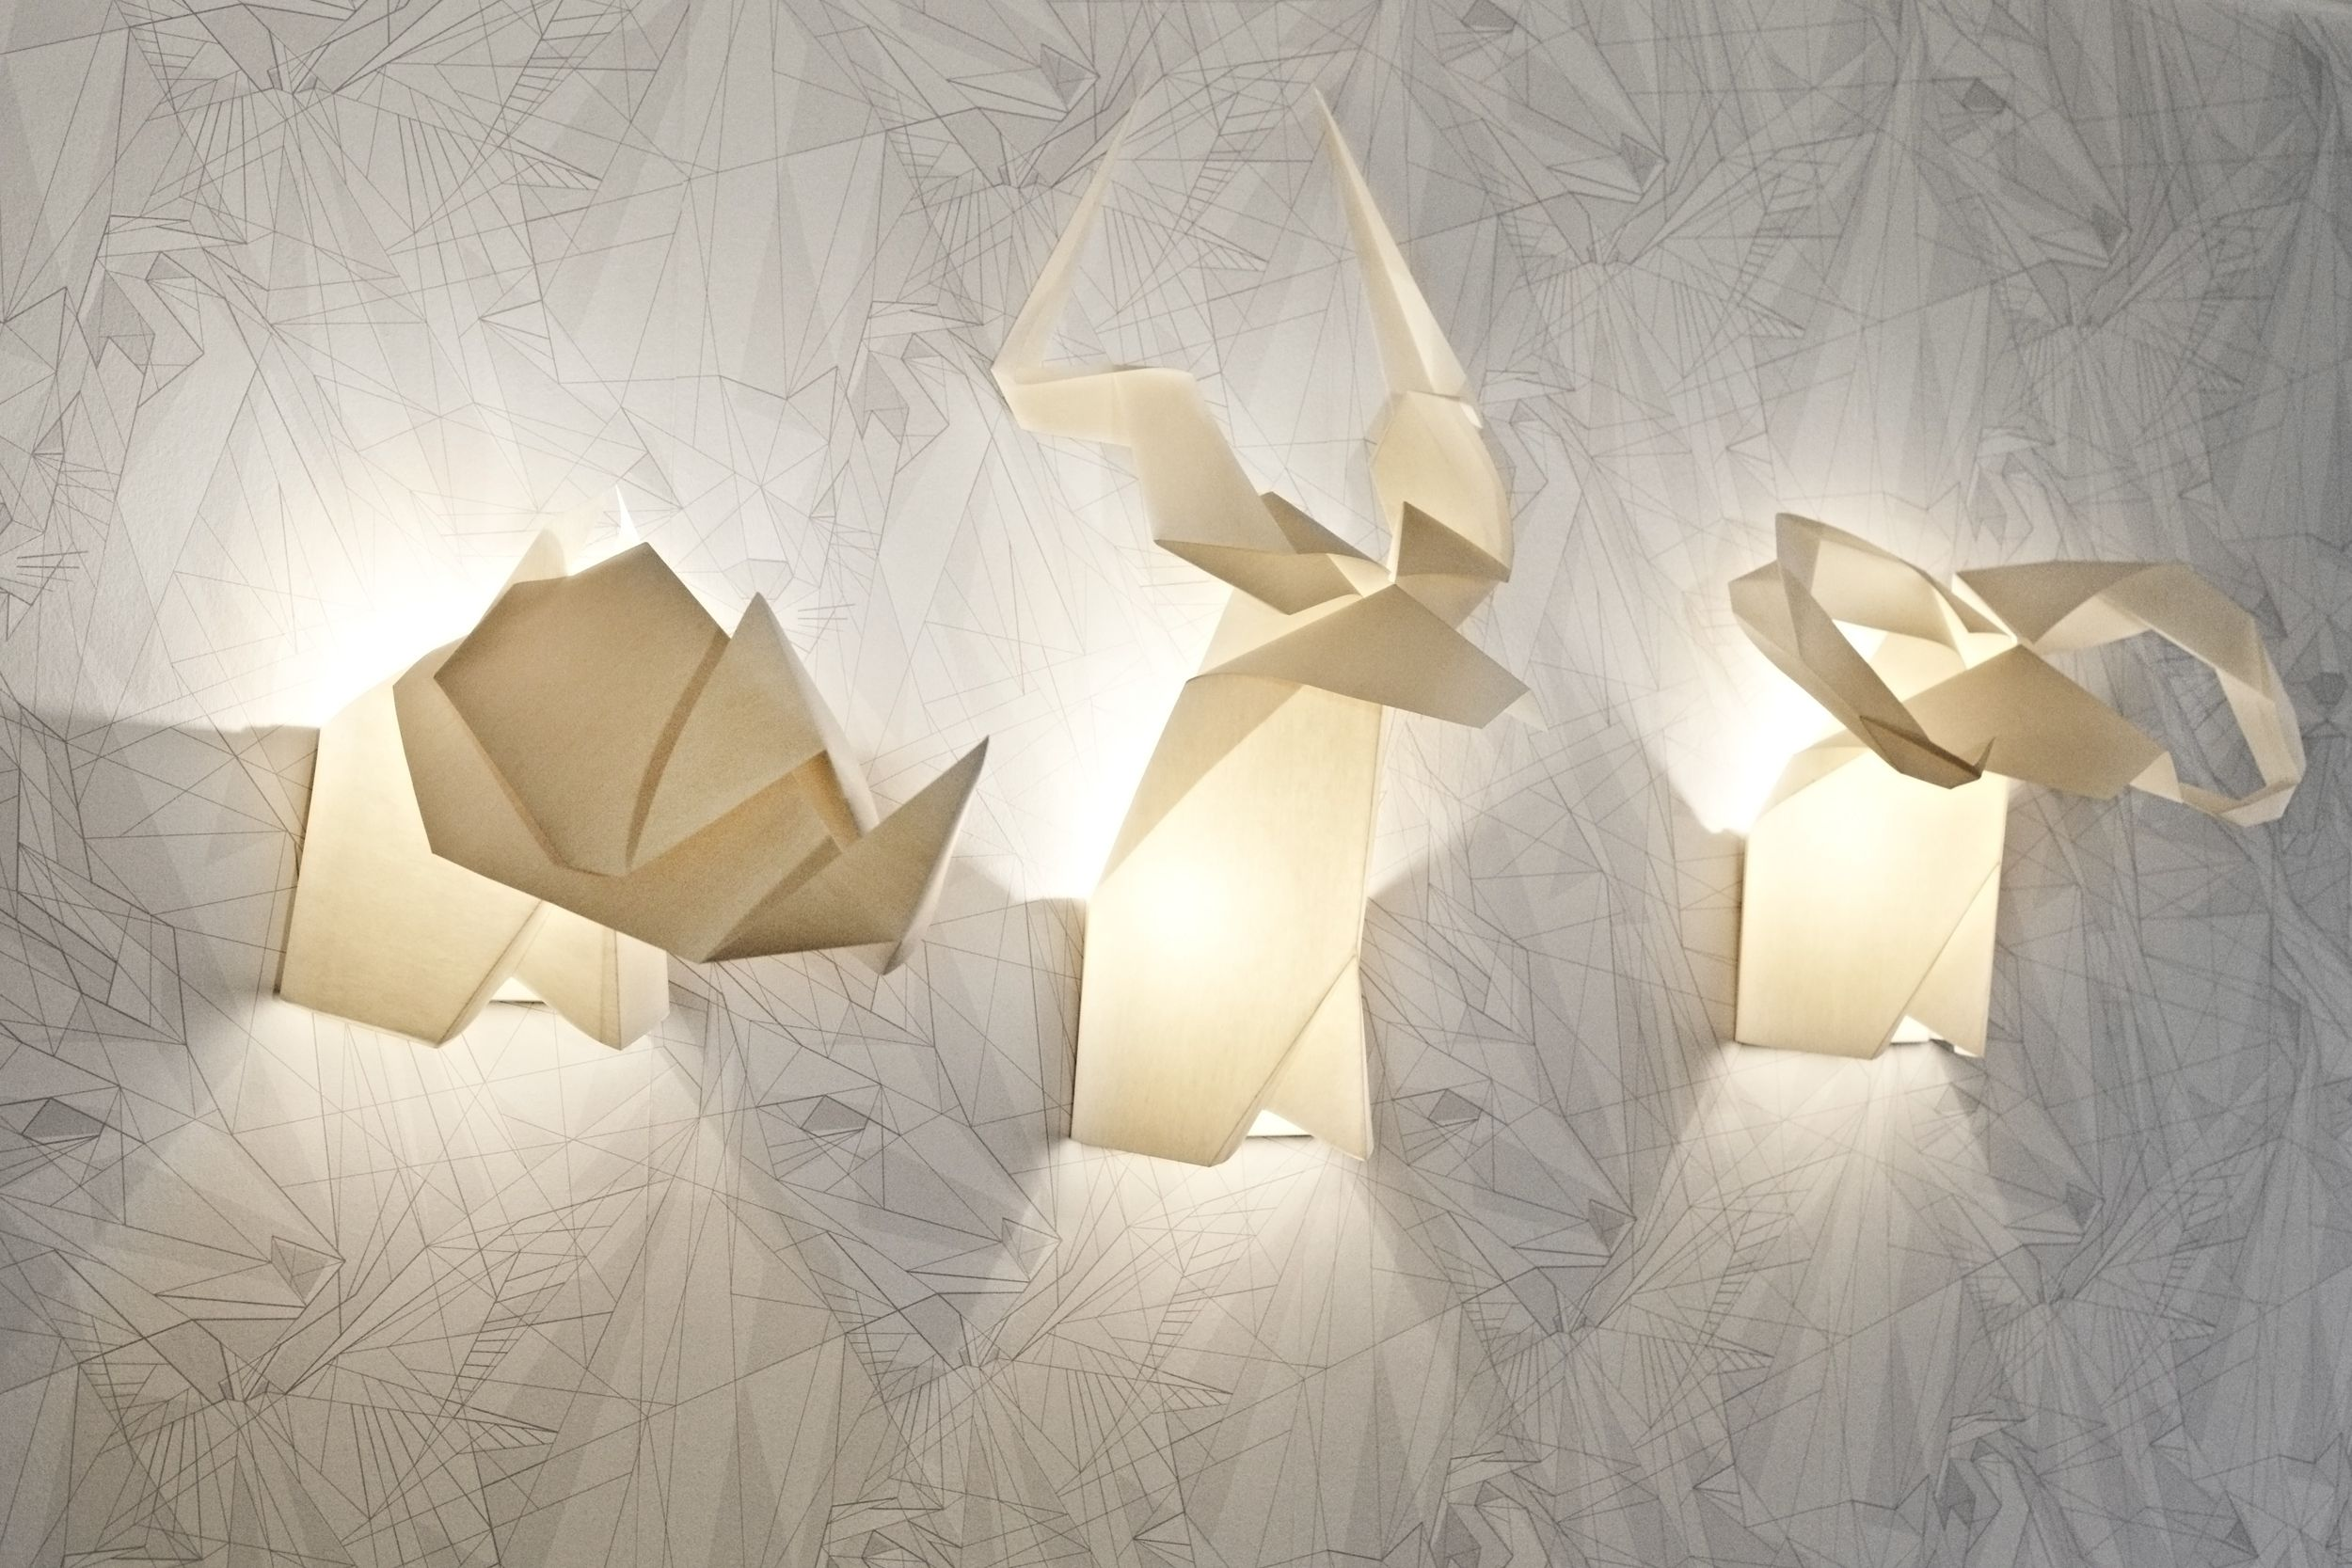 Origamis Hunter lamps from Chilean Si Studio.